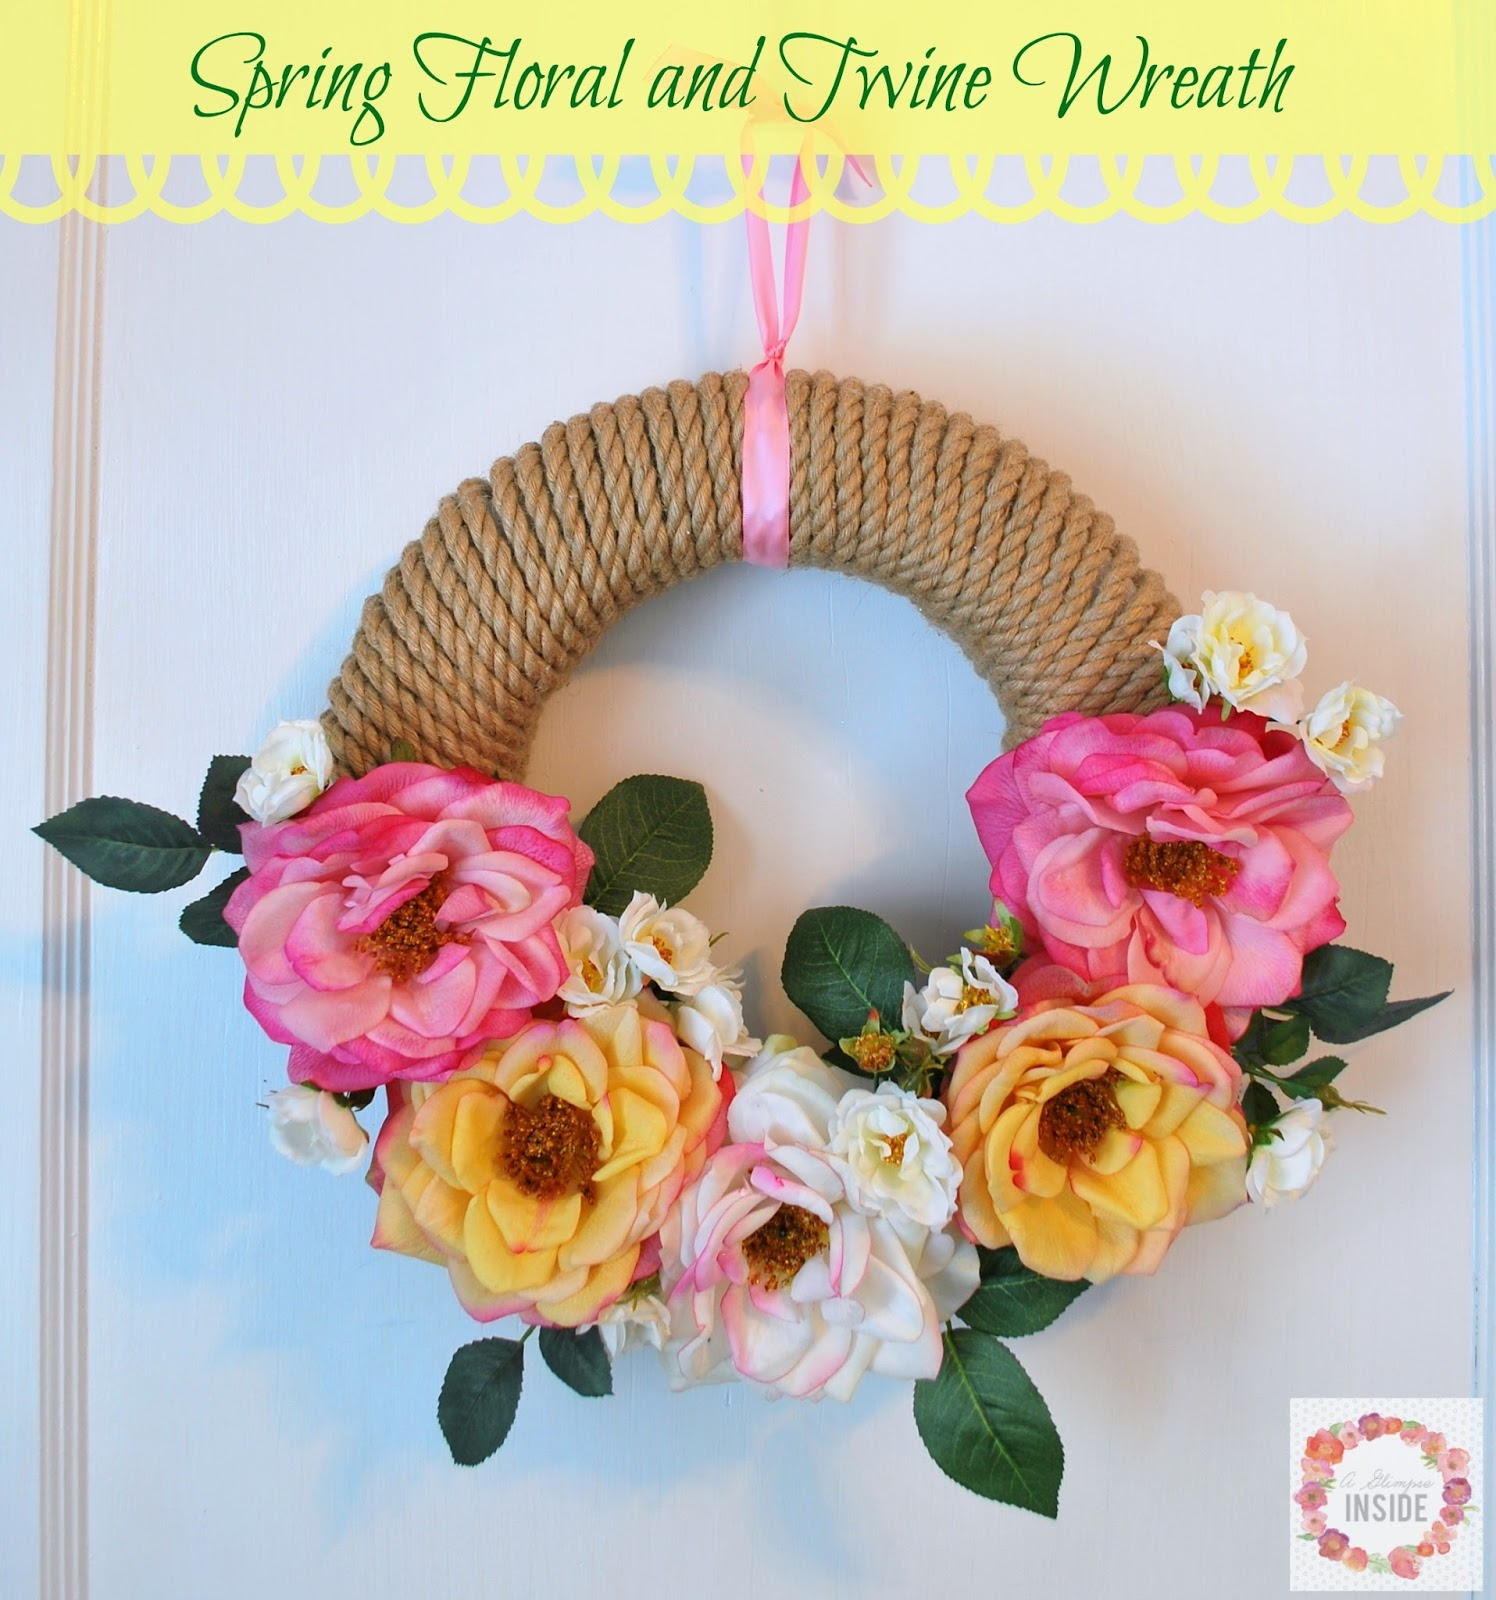 http://www.aglimpseinsideblog.com/2016/02/spring-floral-and-twine-wreath.html